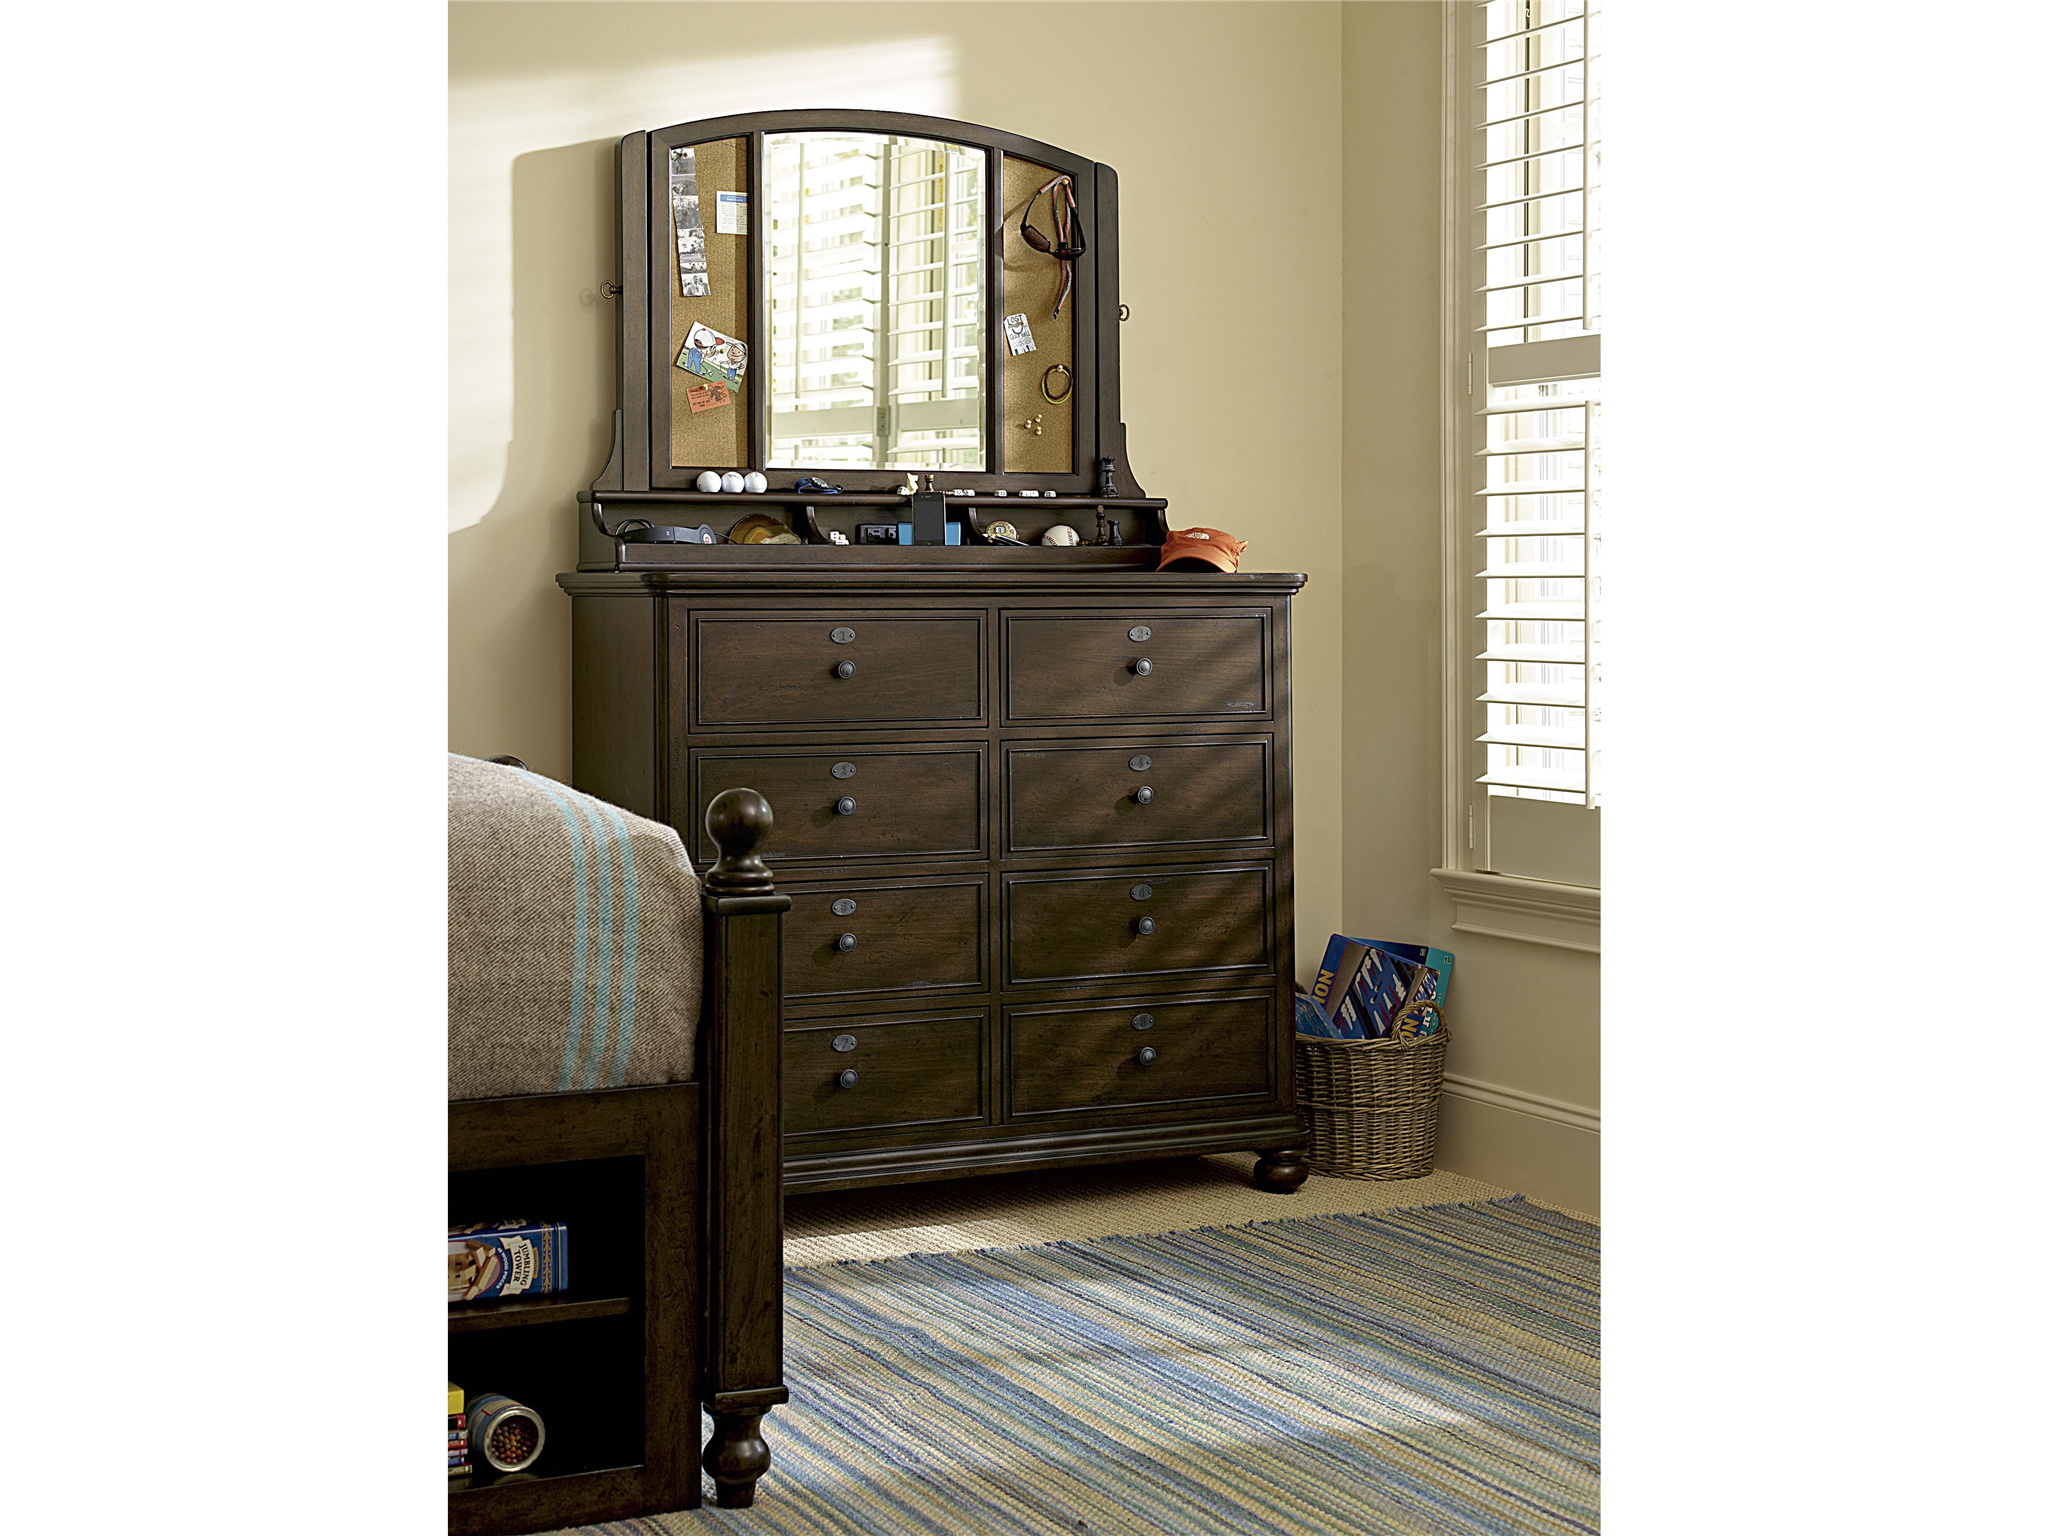 Smartstuff furniture paula deen guys jack 39 s chest for Furniture jack